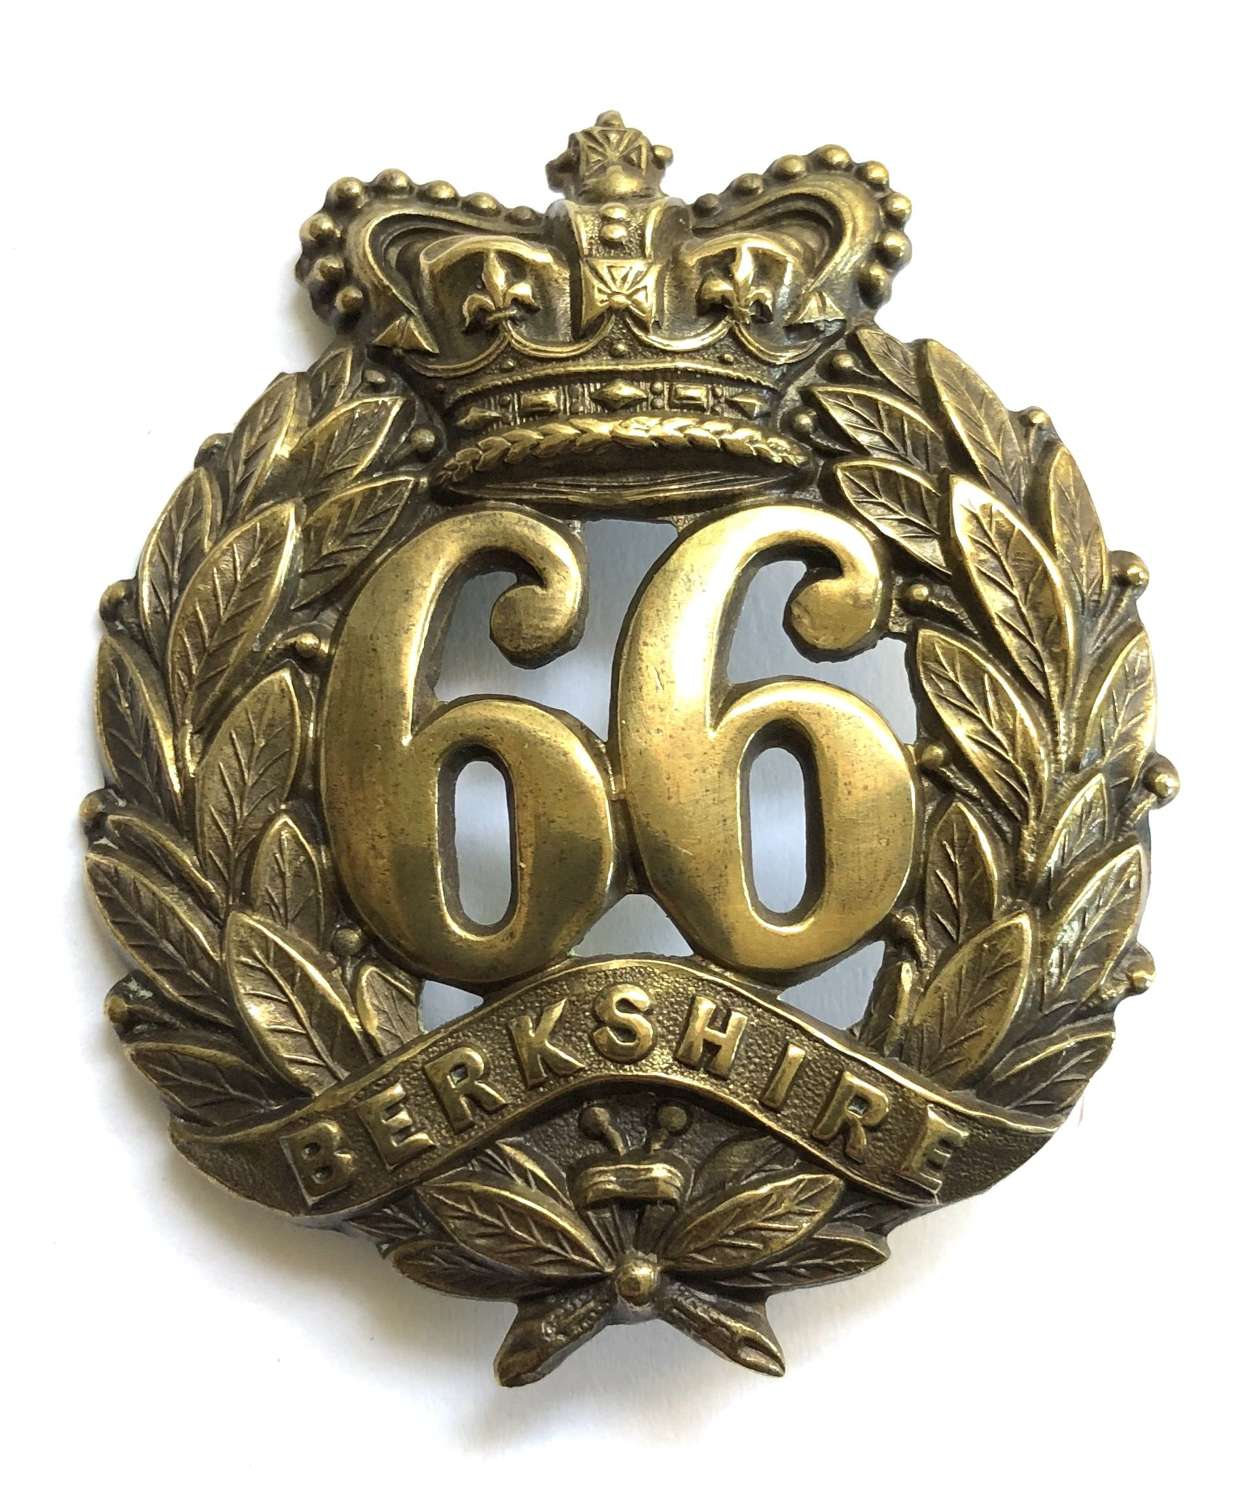 66th (Berkshire) Regiment of Foot Victorian OR's glengarry badge